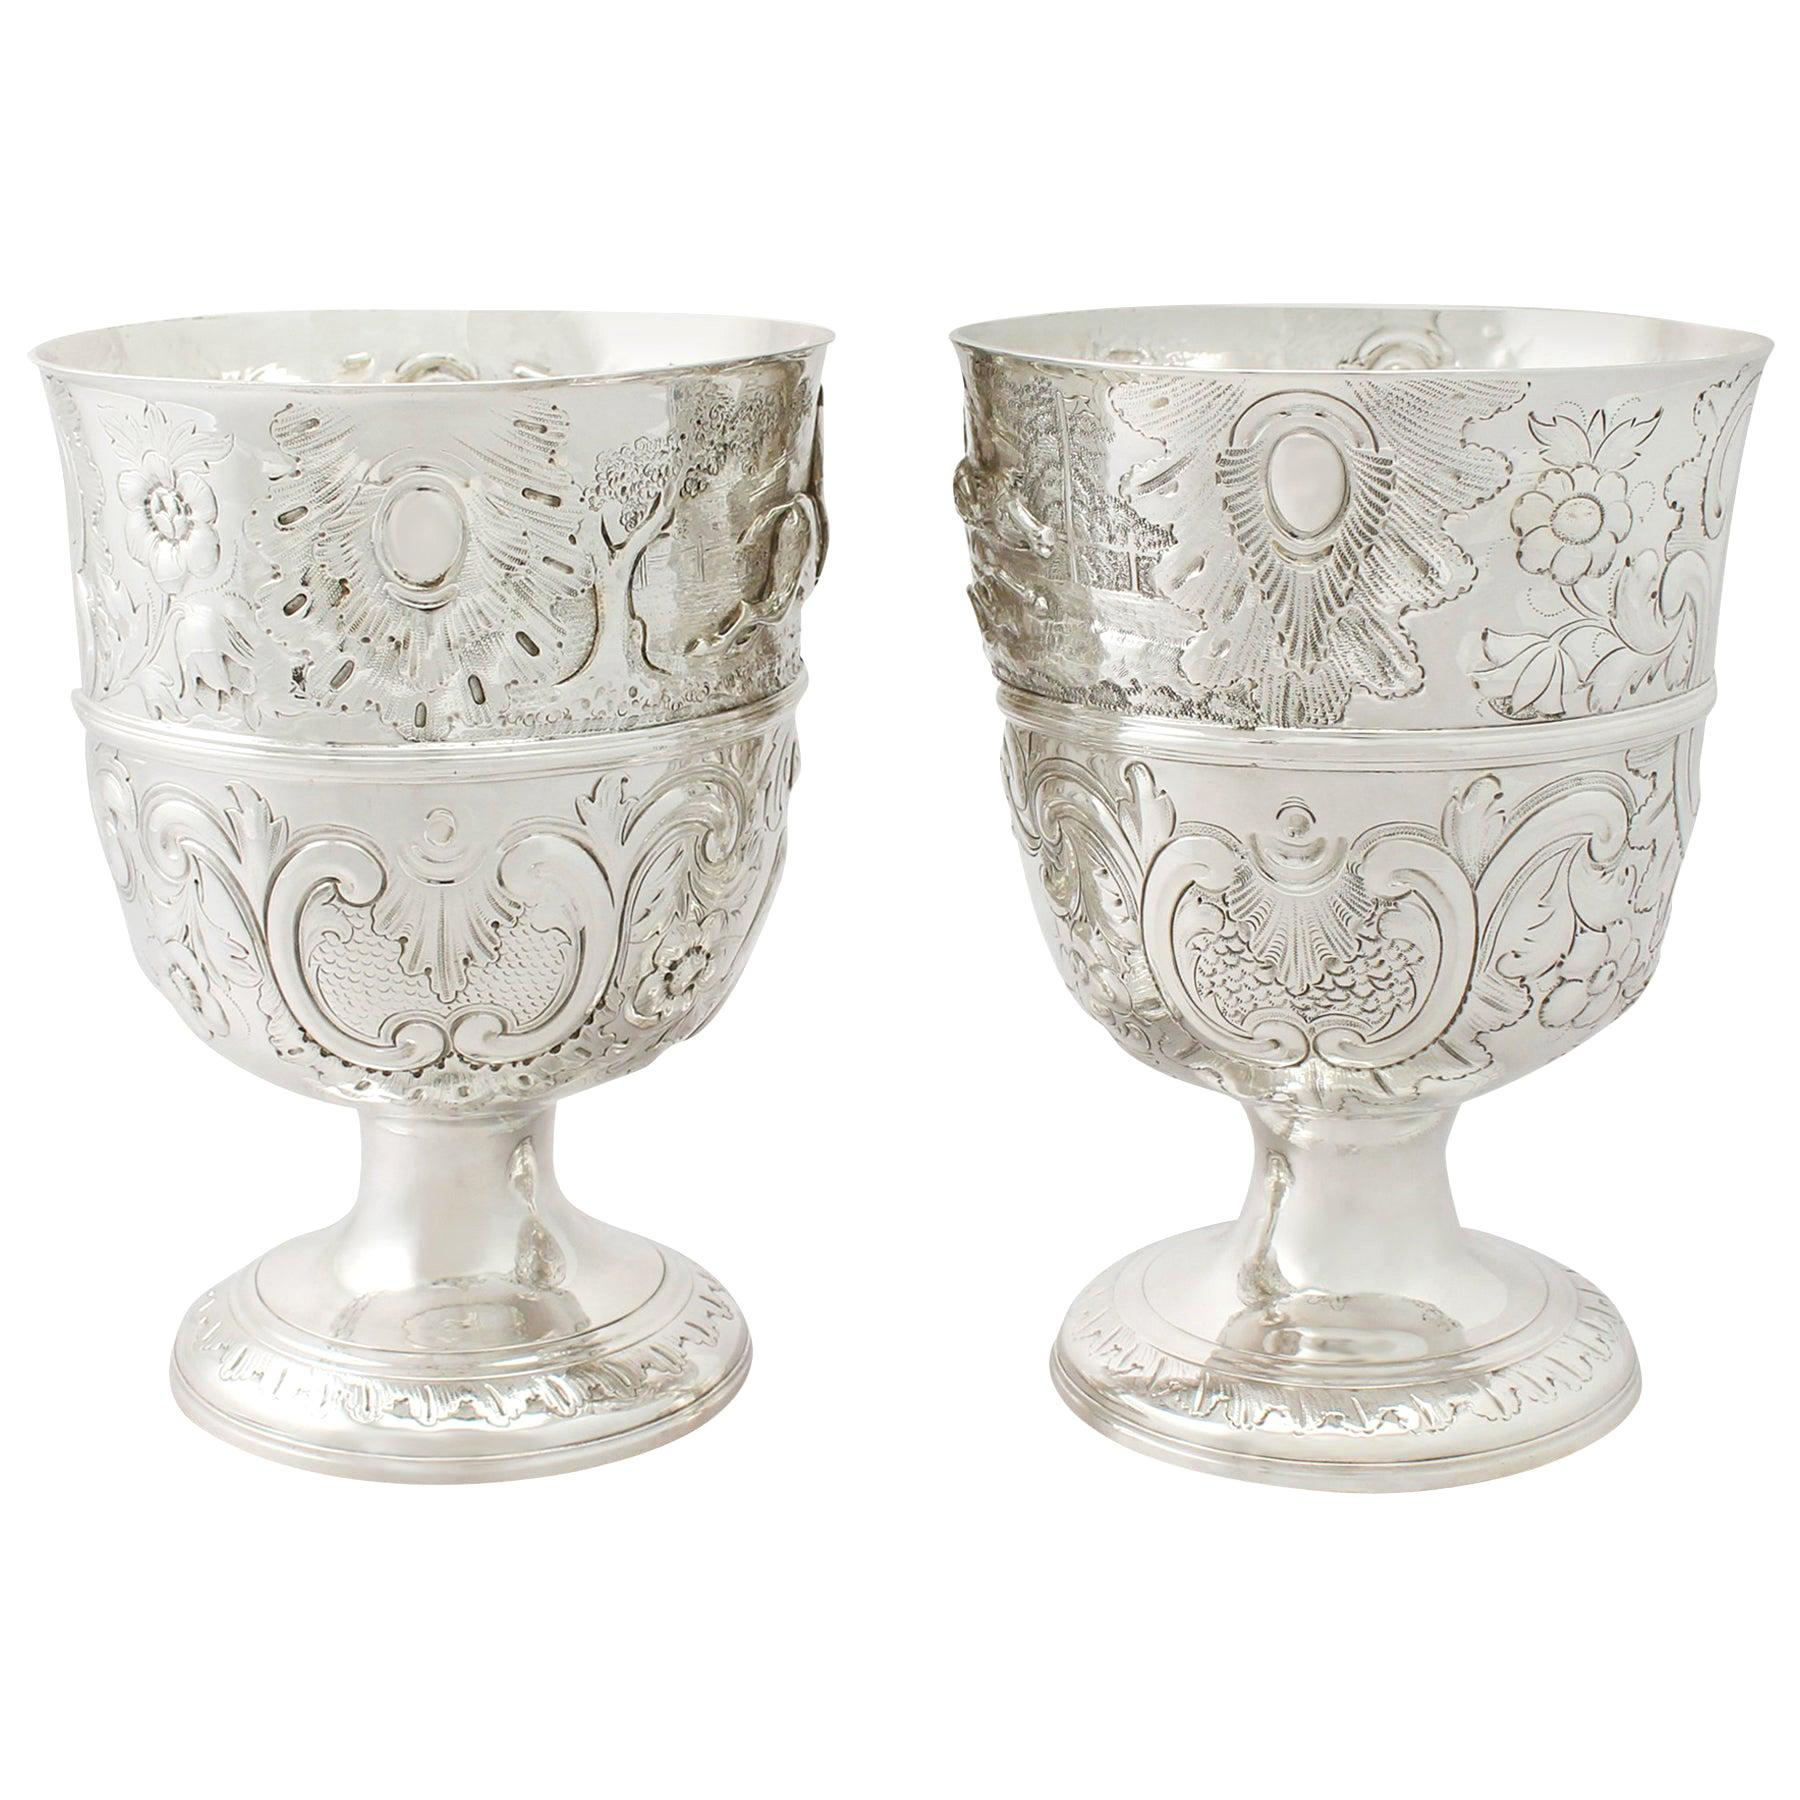 Antique English Sterling Silver Presentation Cups